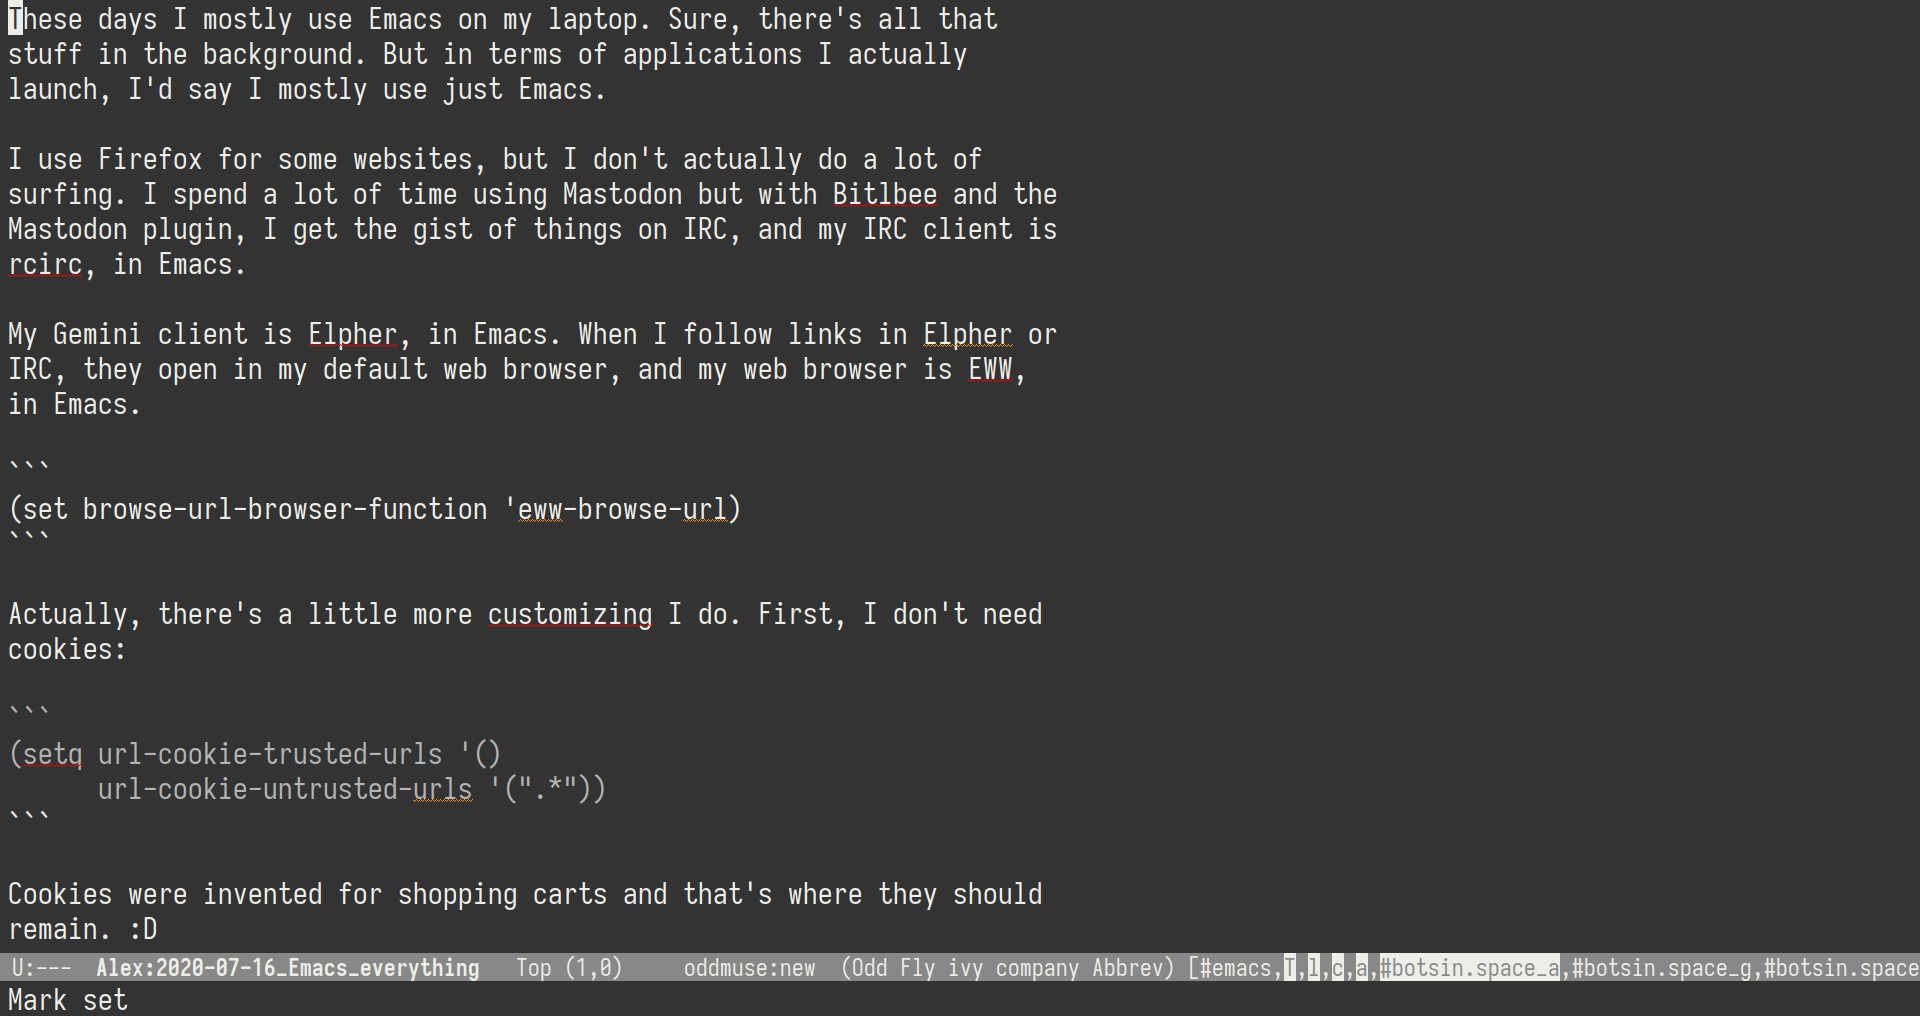 Image 1 for 2020-07-16 Emacs everything